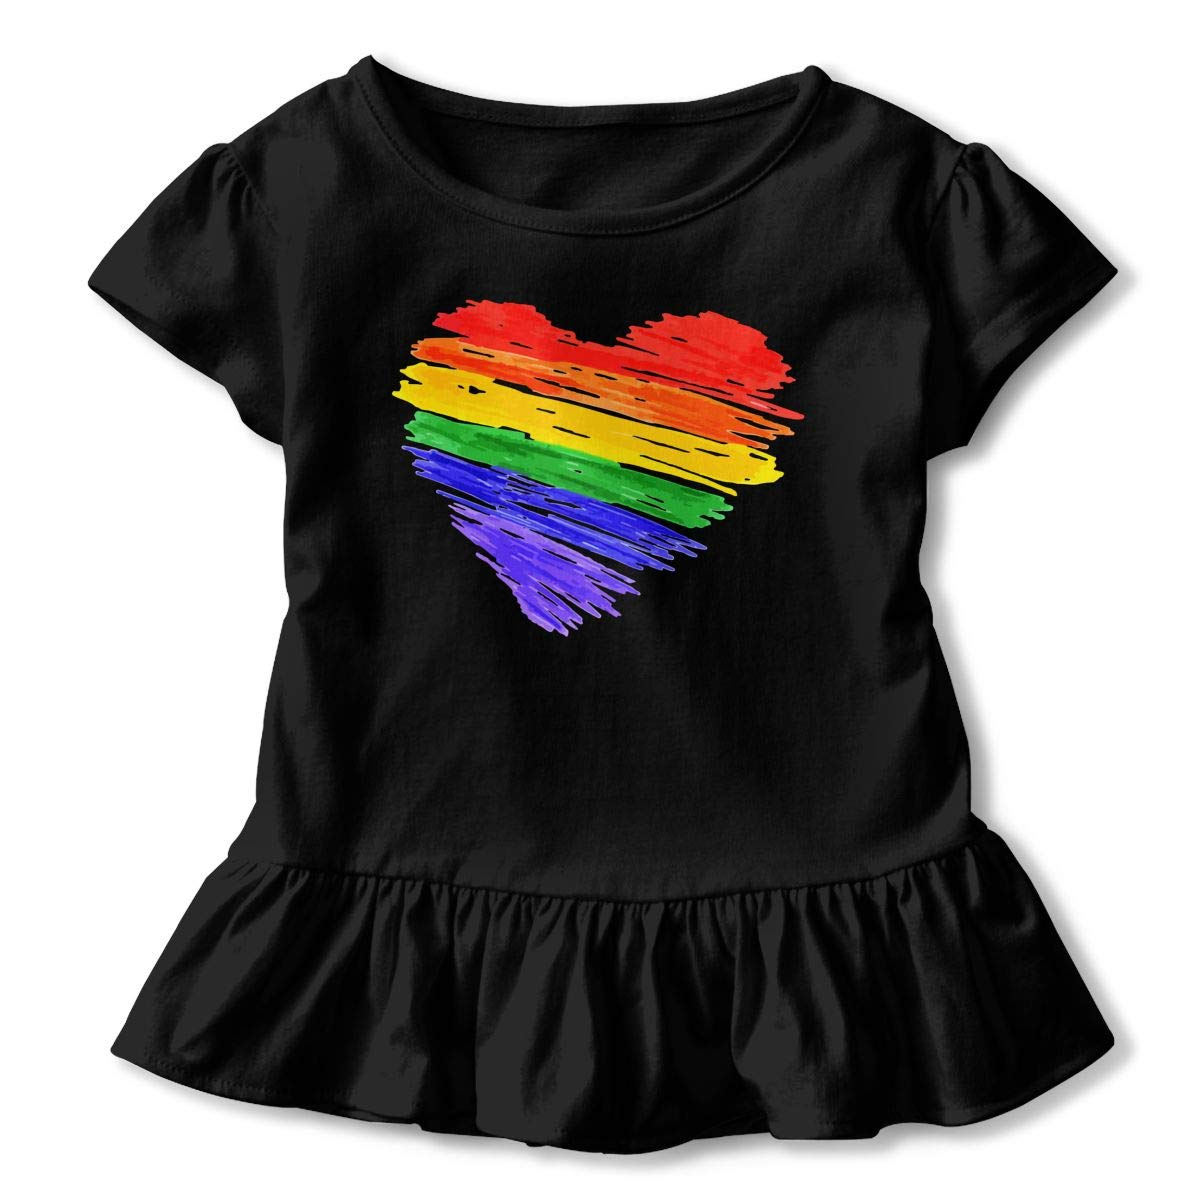 Rainbow Pride Gay Equal Rights Baby Girls Short Sleeve Ruffles T-Shirt Tops 2-Pack Cotton Tee